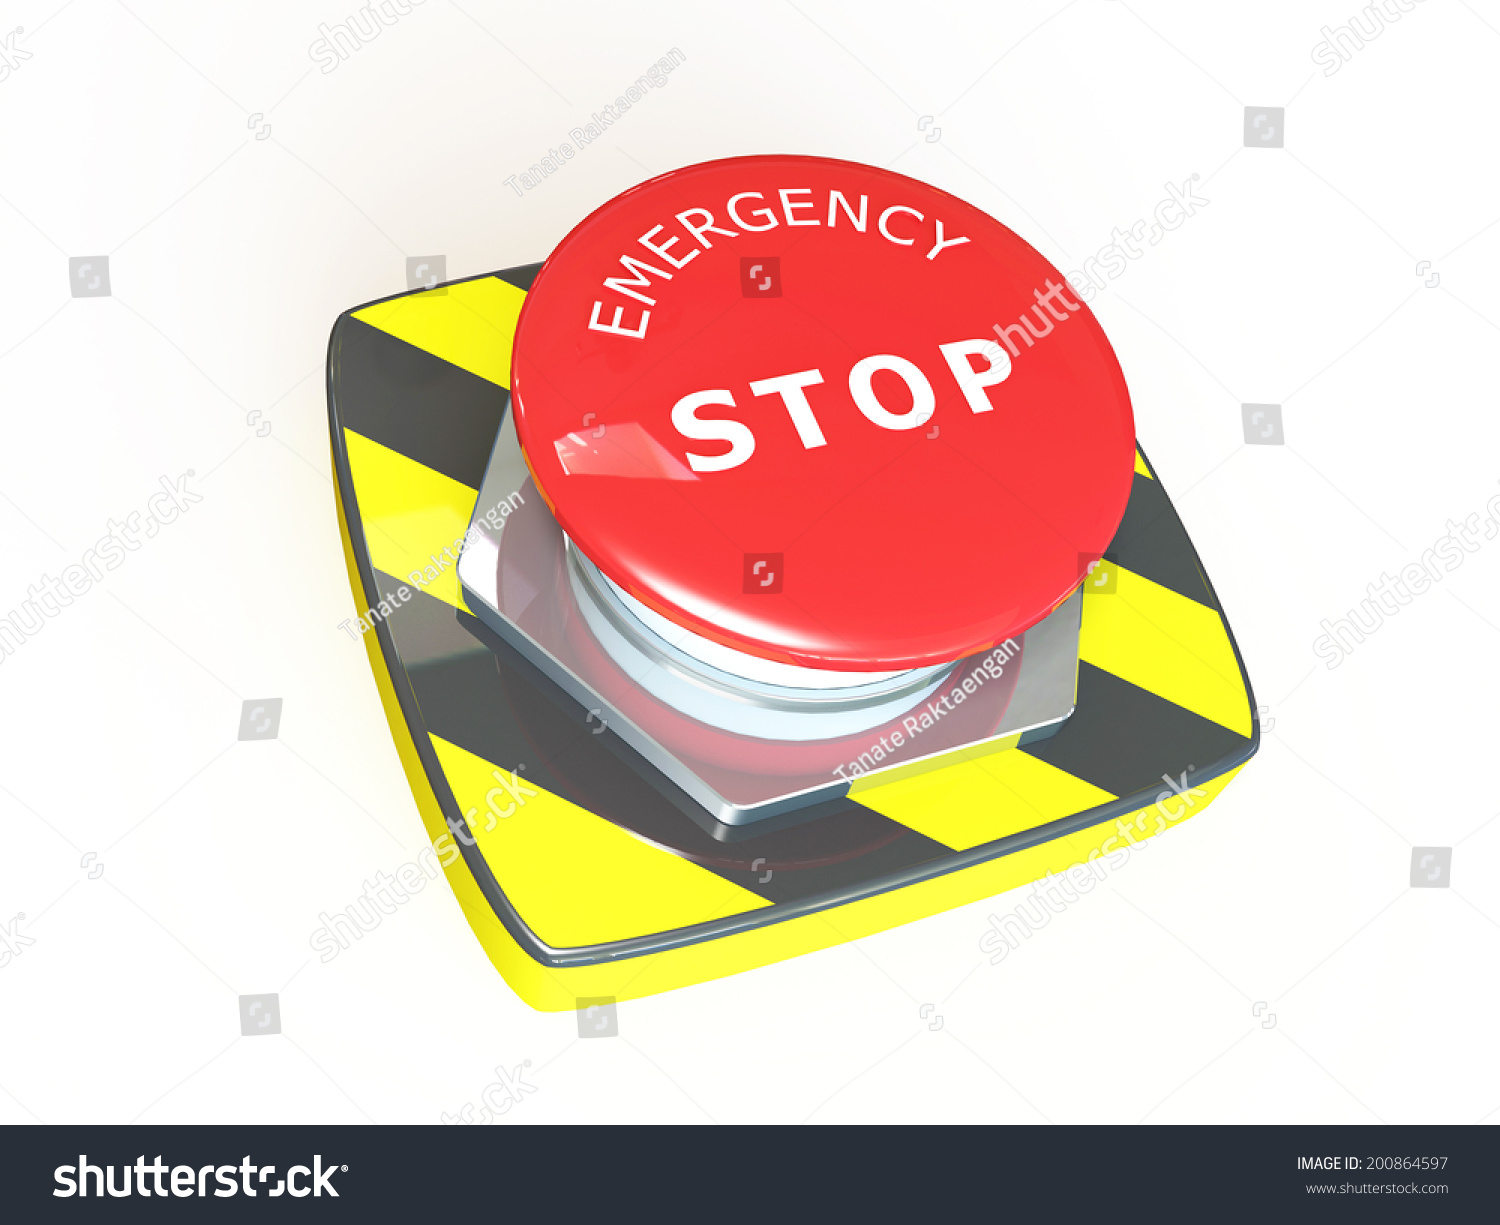 Emergency stop icon clipart emergency off - Emergency Stop